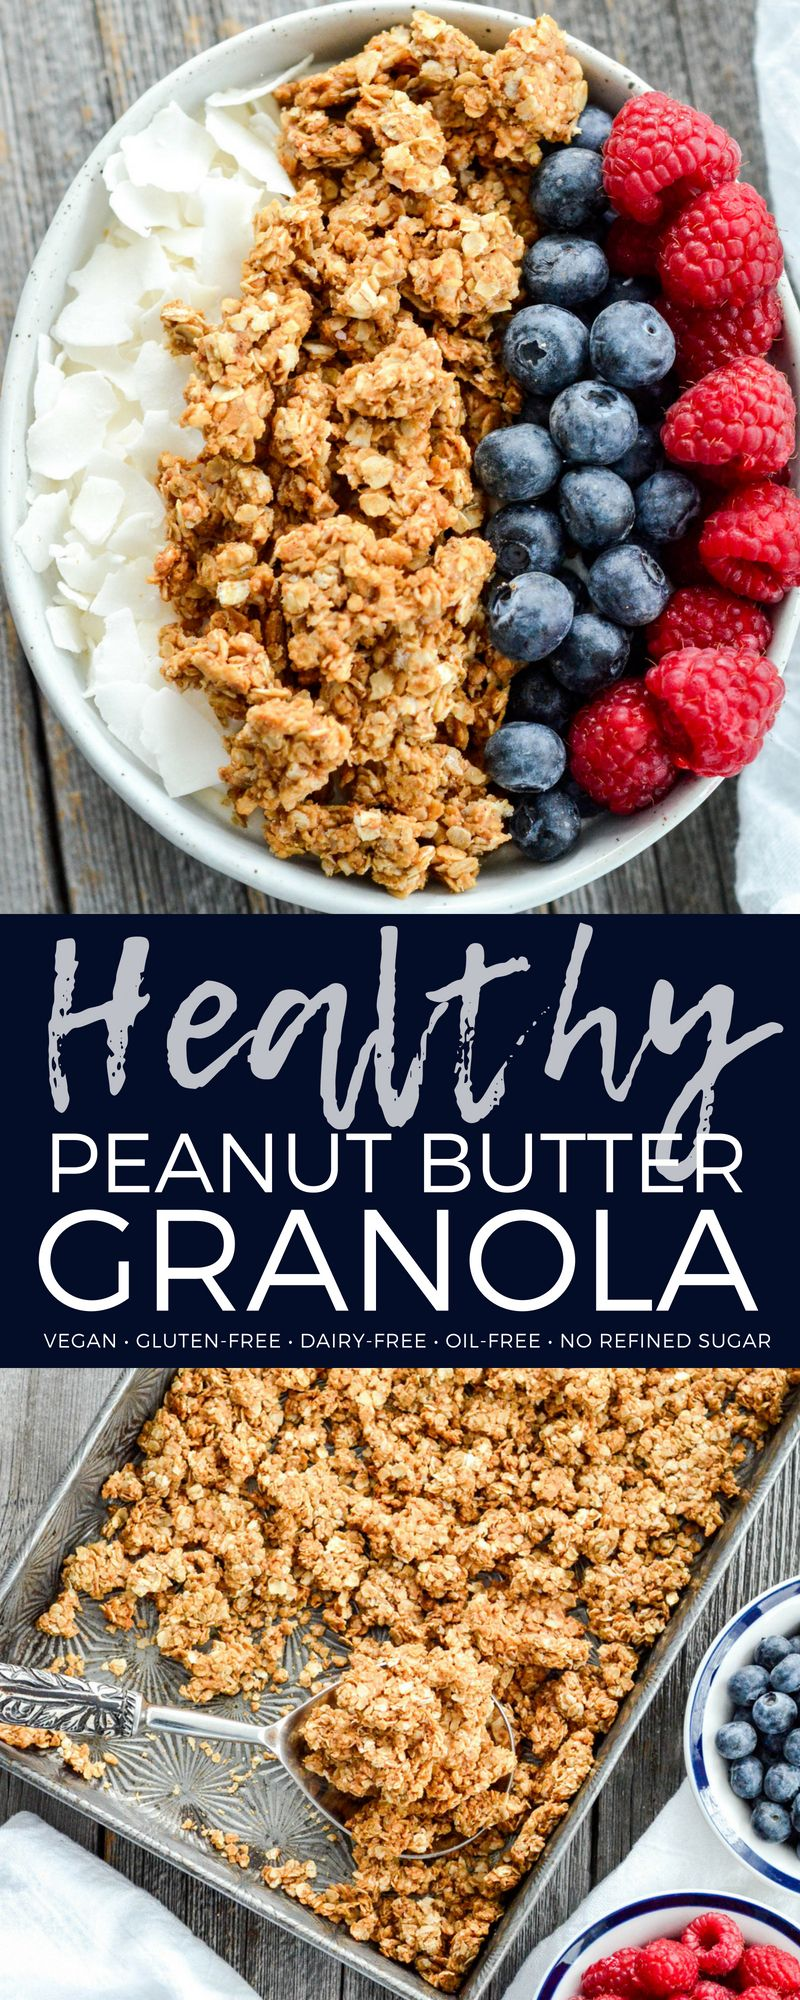 This Healthy Peanut Butter Granola is the perfect make-ahead breakfast recipe! With only 6 ingredients it's so easy to make (ready in less than 30 minutes)! Gluten-free, dairy-free, refined sugar free, oil free and vegan! #healthygranola #peanutbutter #breakfast #recipe #granola #glutenfree #vegan #dairyfree via @joyfoodsunshine #glutenfreebreakfasts